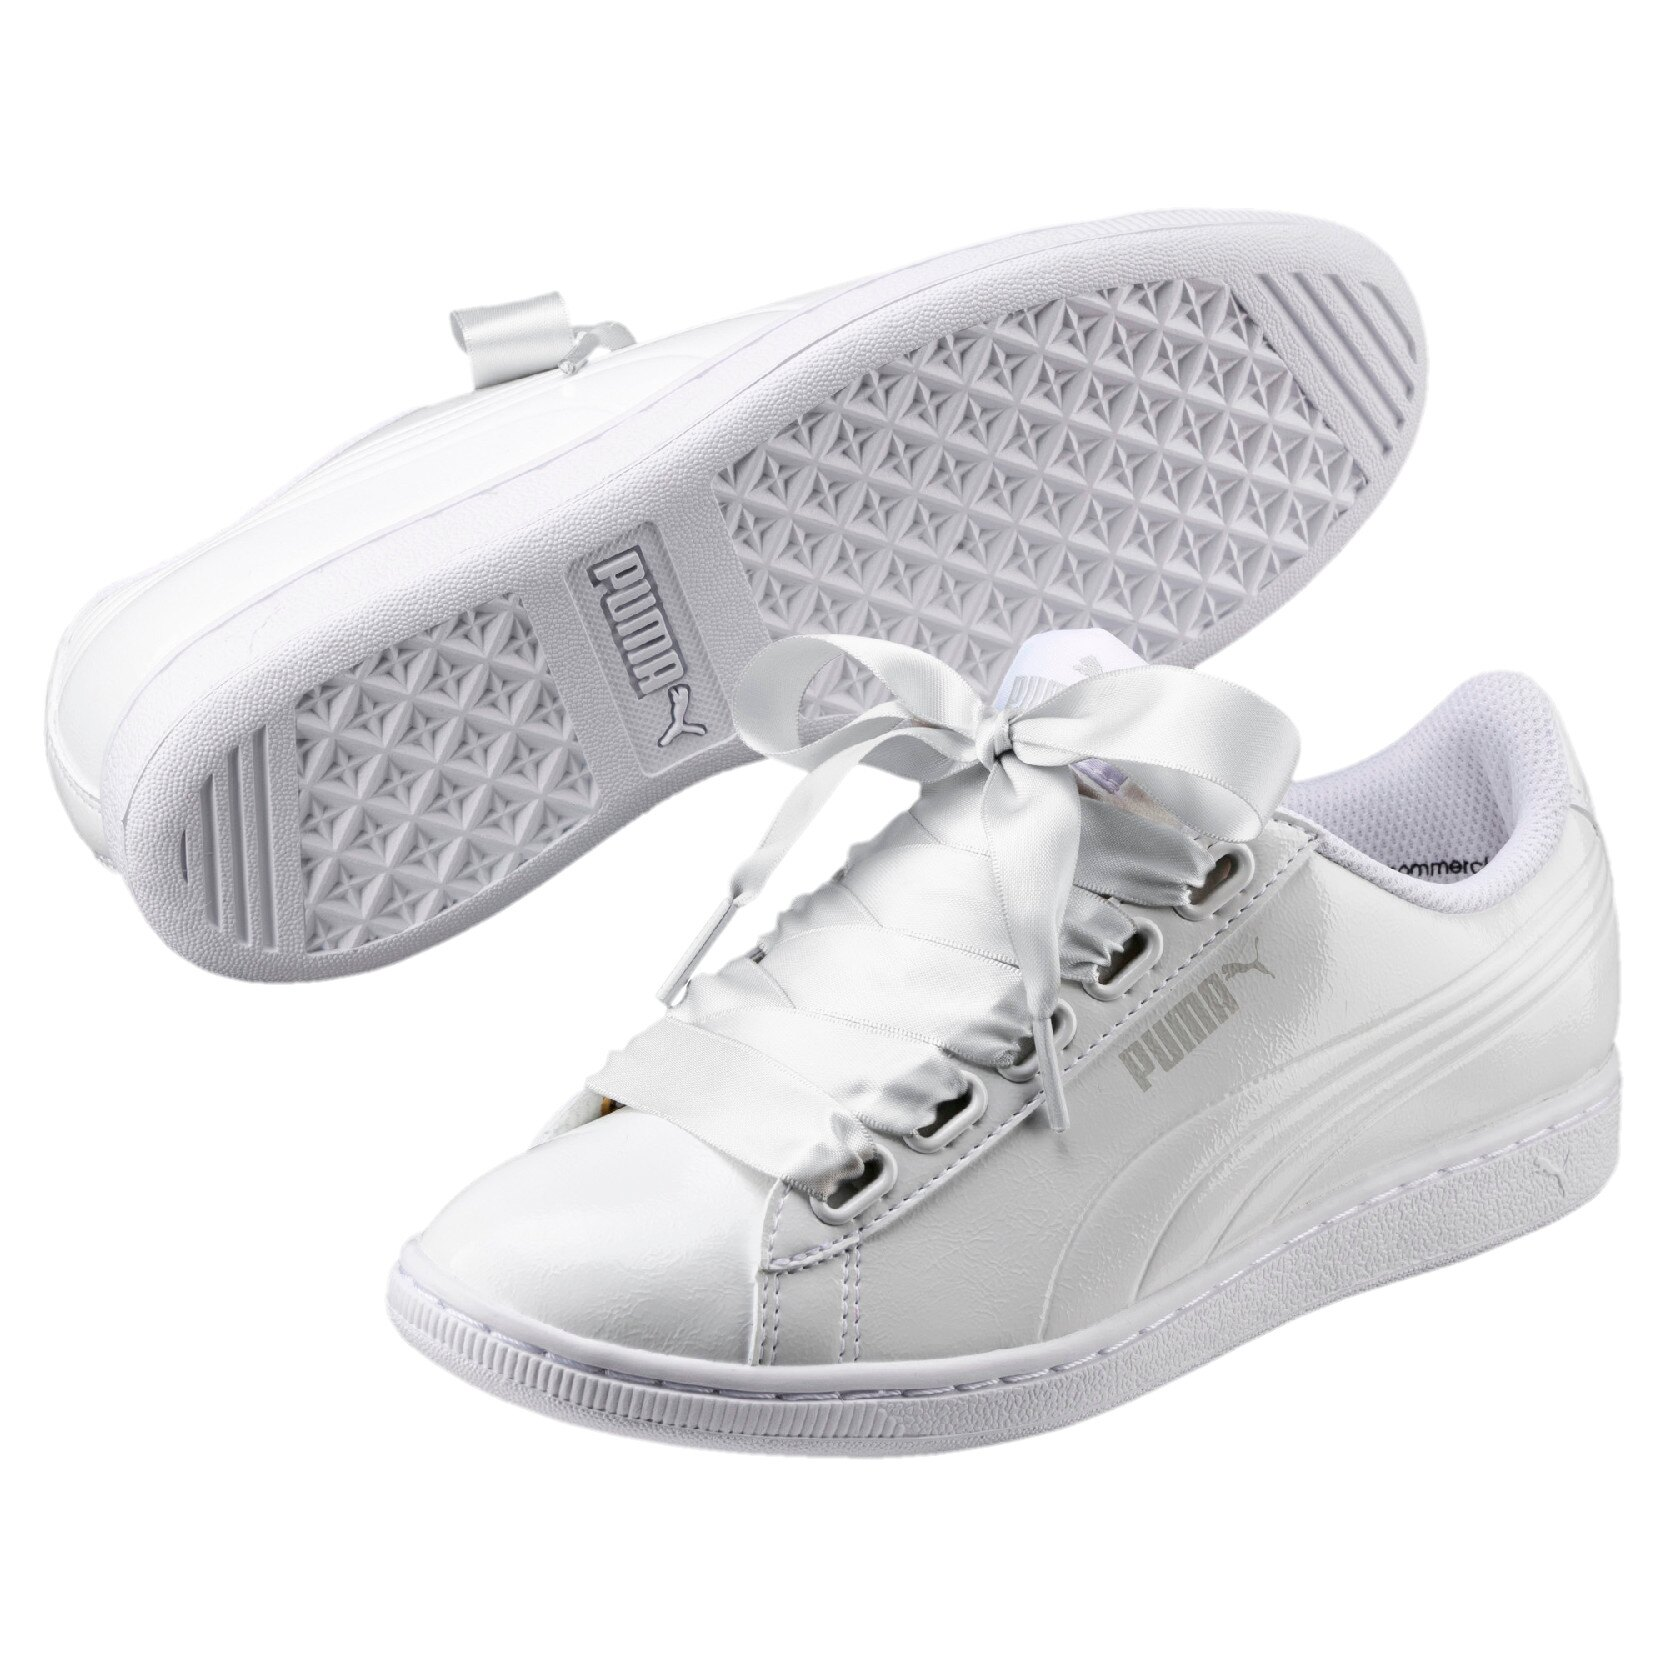 53ecb69175 Official Puma Store  PUMA Vikky Ribbon Patent Women s Sneakers ...